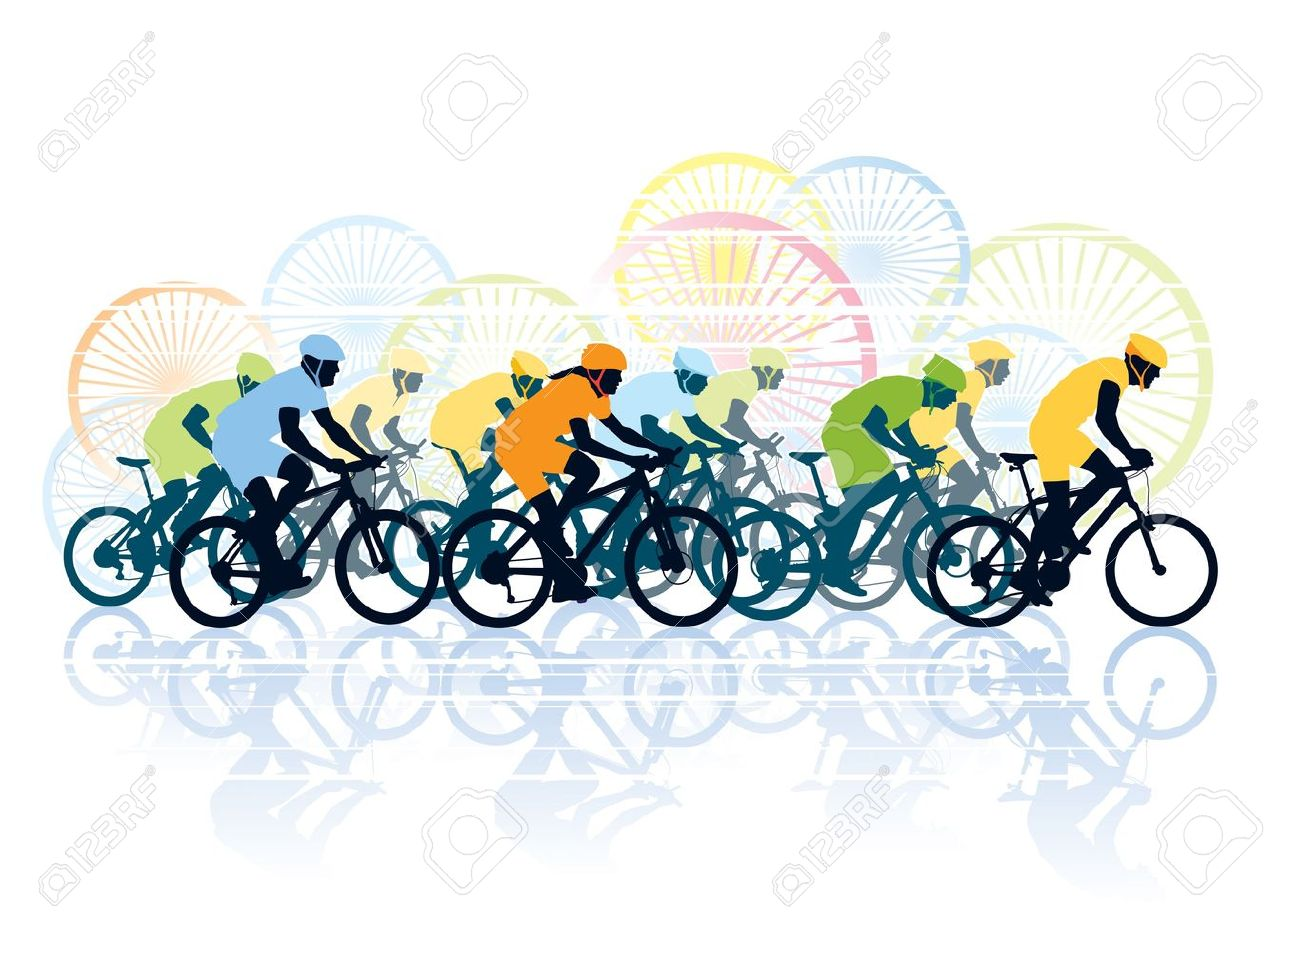 Cycle race clipart 12 » Clipart Station.